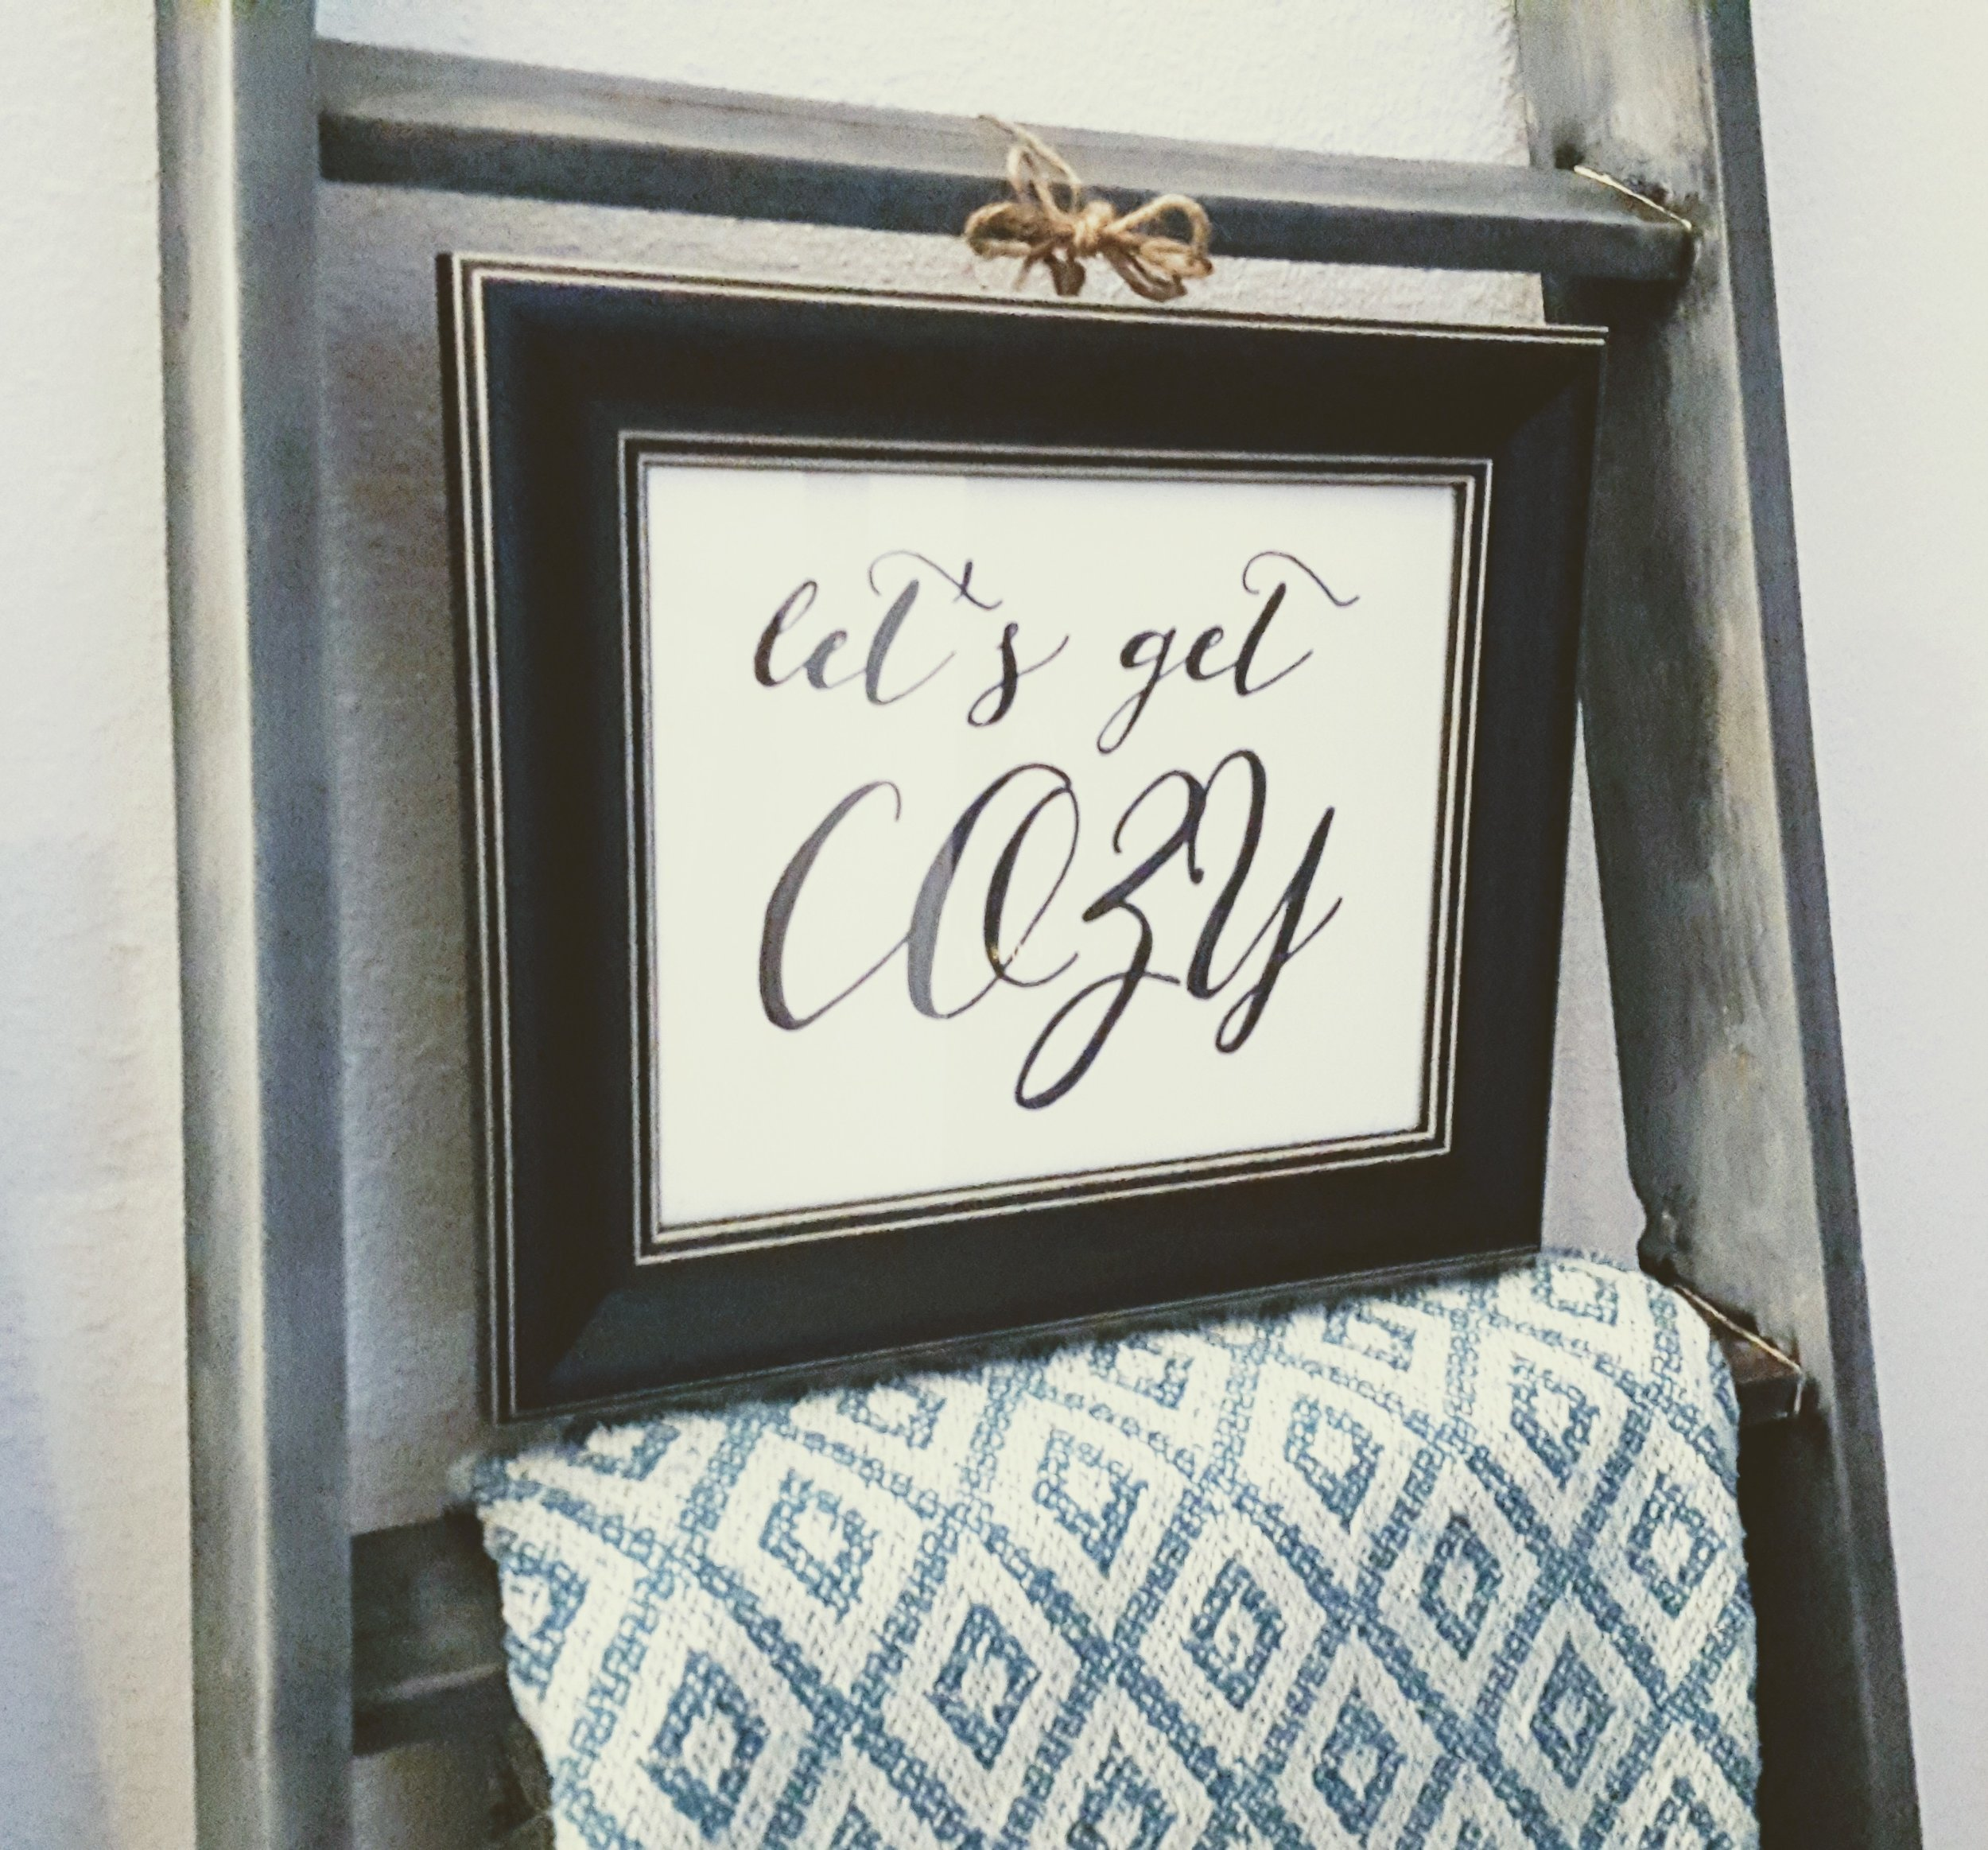 let's get cozy handwritten sign.jpg